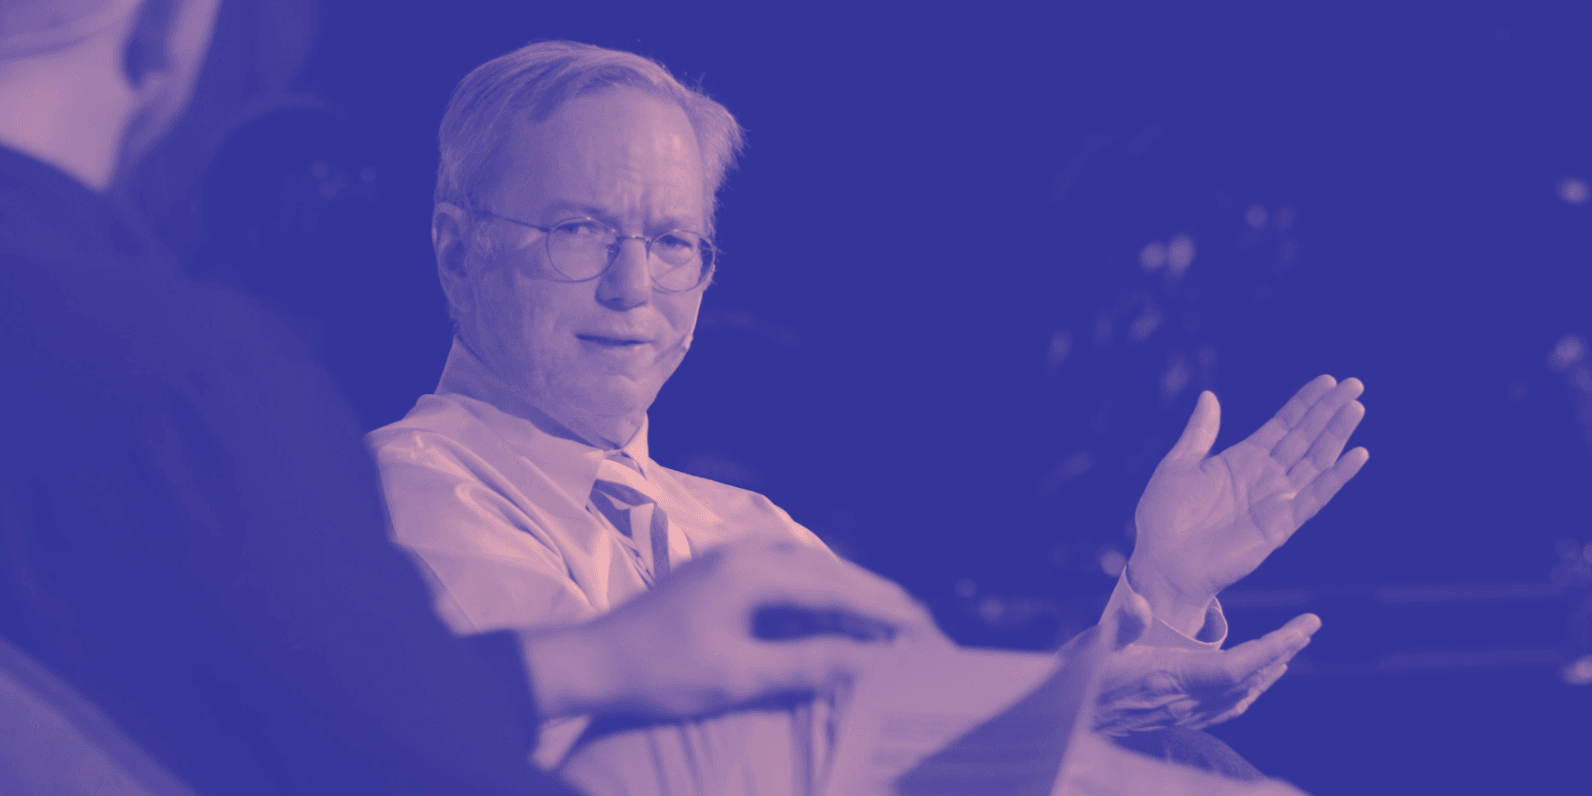 Eric Schmidt's top tips for growing your startup from 0 to Google